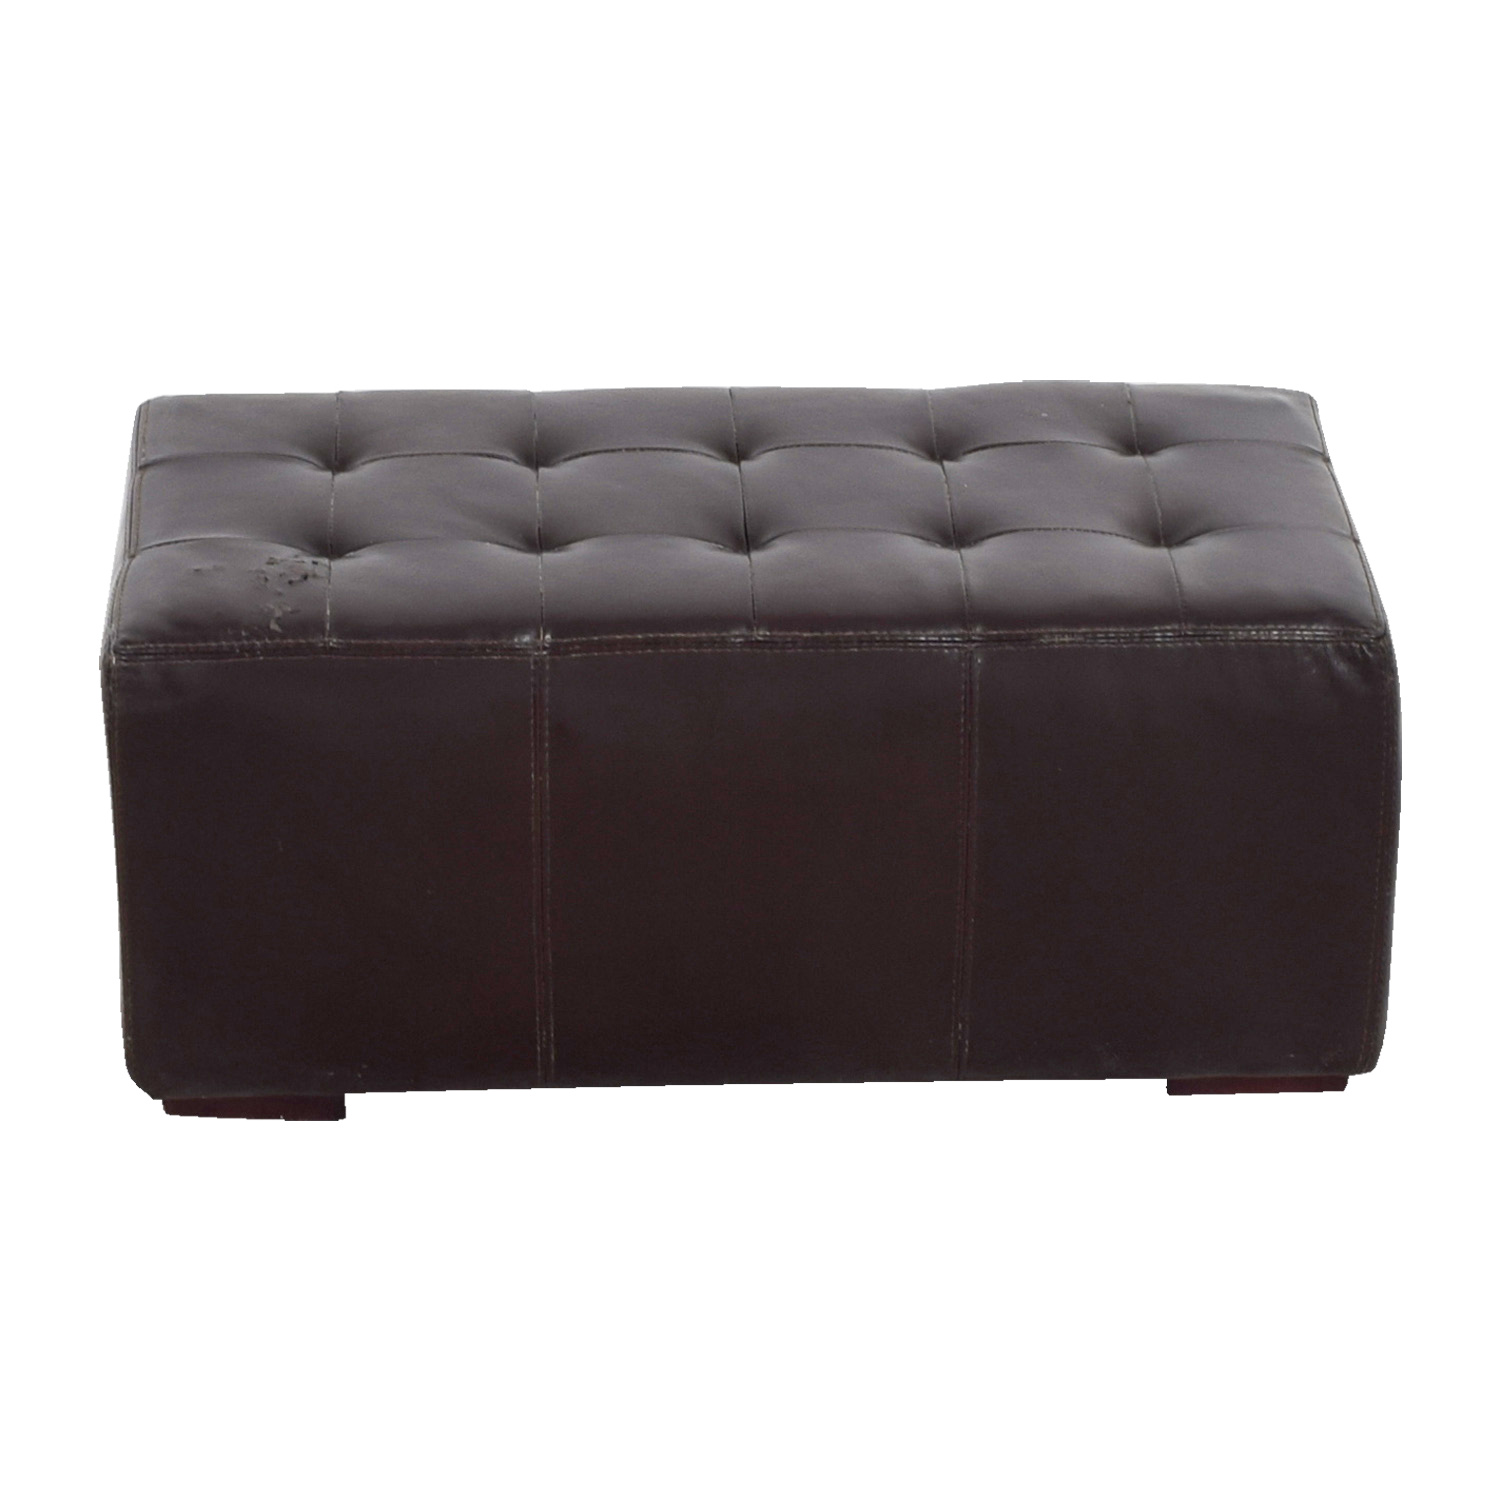 IKEA IKEA Brown Leather Tufted Ottoman used